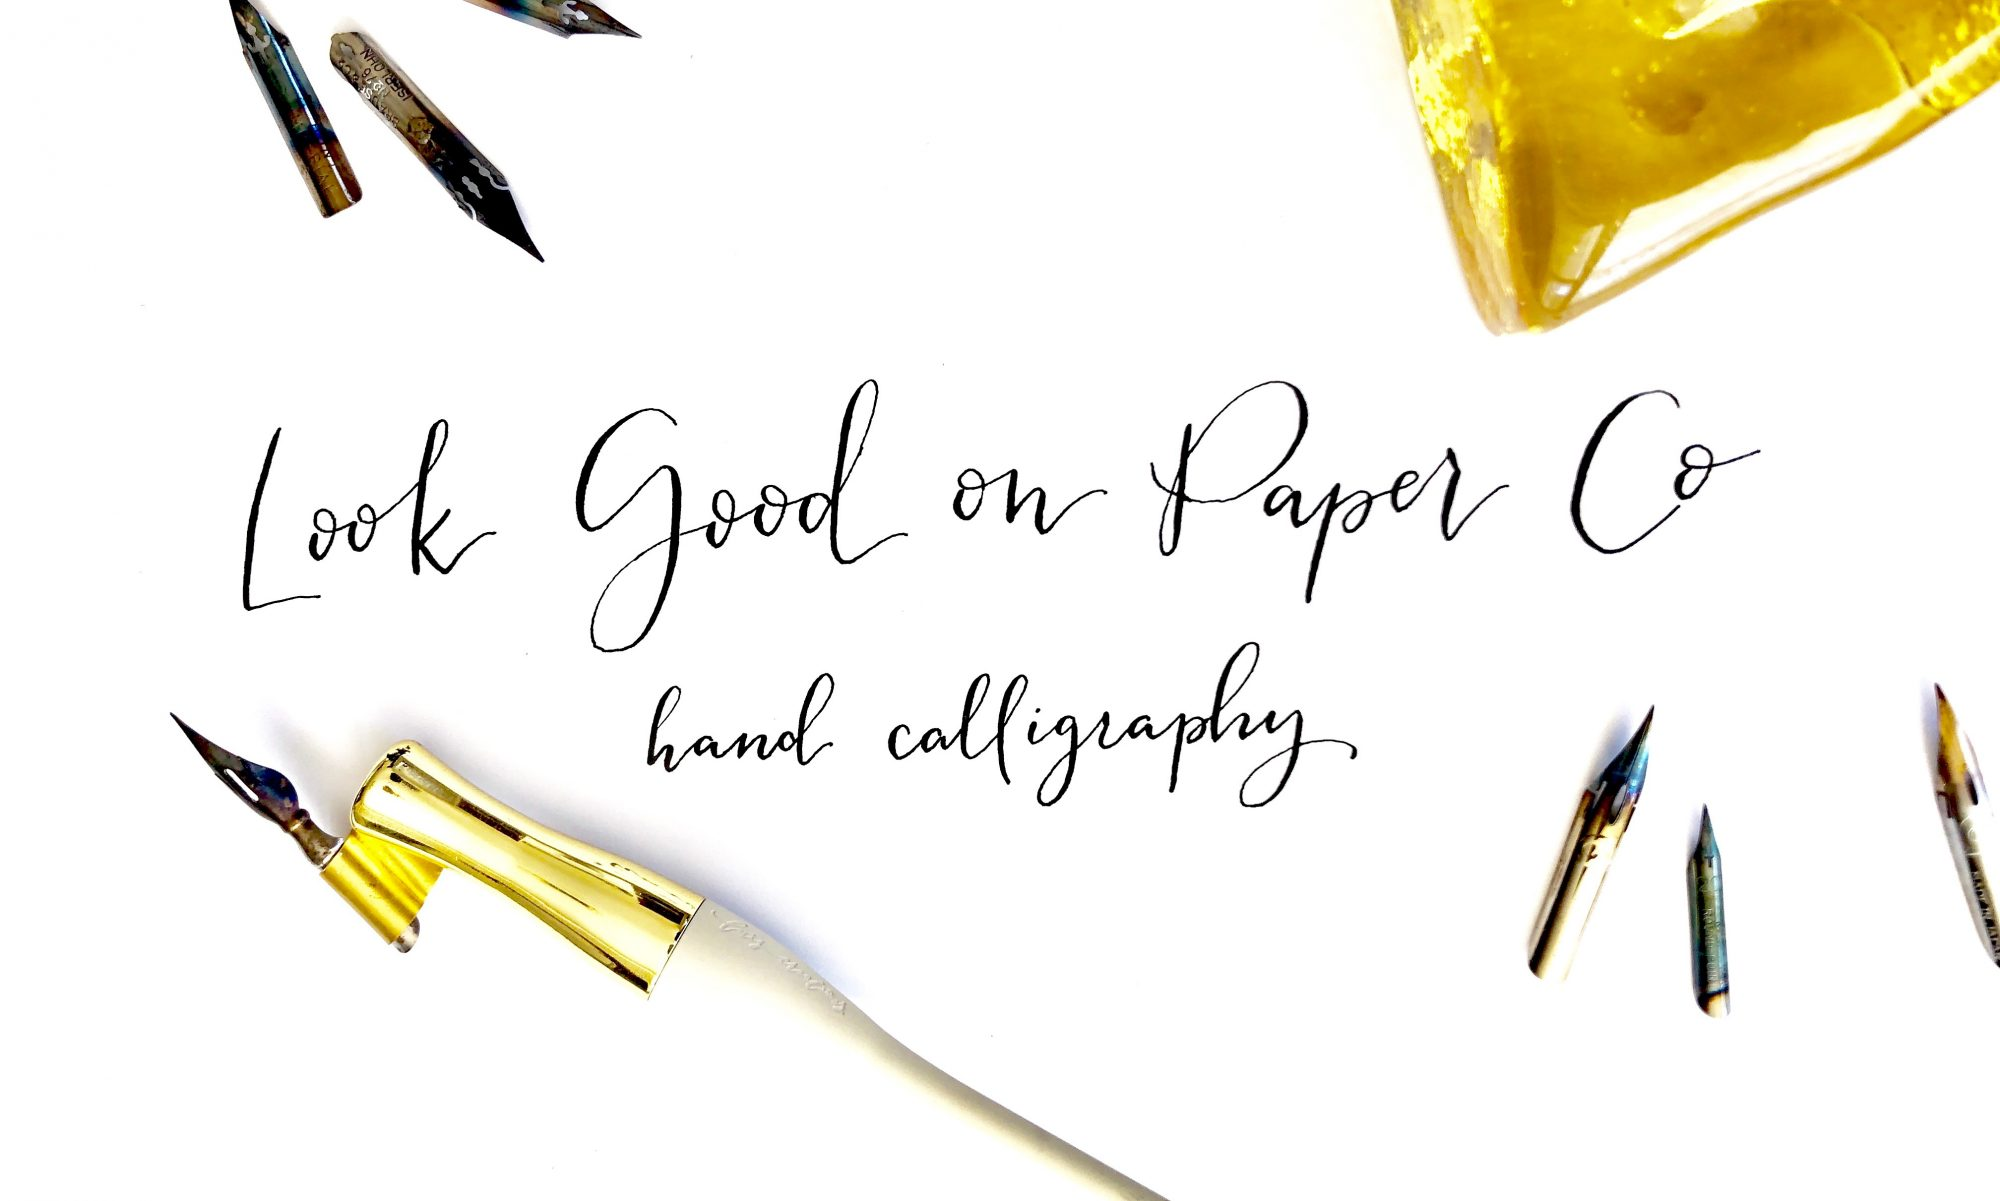 Look Good On Paper Co.